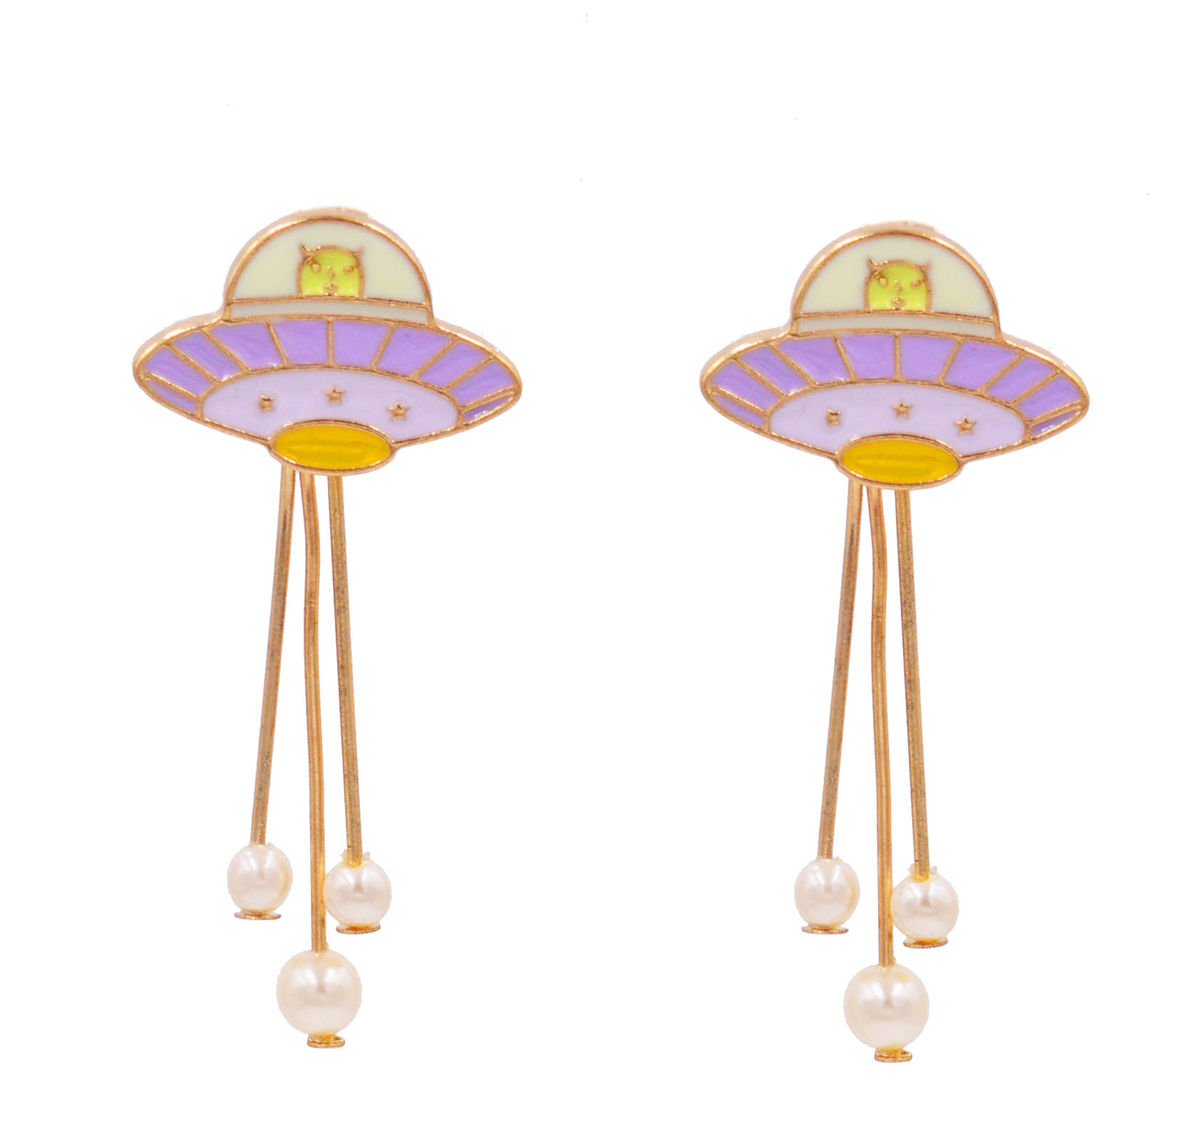 Alien in UFO Front and Back Two Part Earrings Ear Jacket in Gold Tone and with Purple and Green Enamel - Cute Fun Pretty and Quirky Jewellery  - product images  of